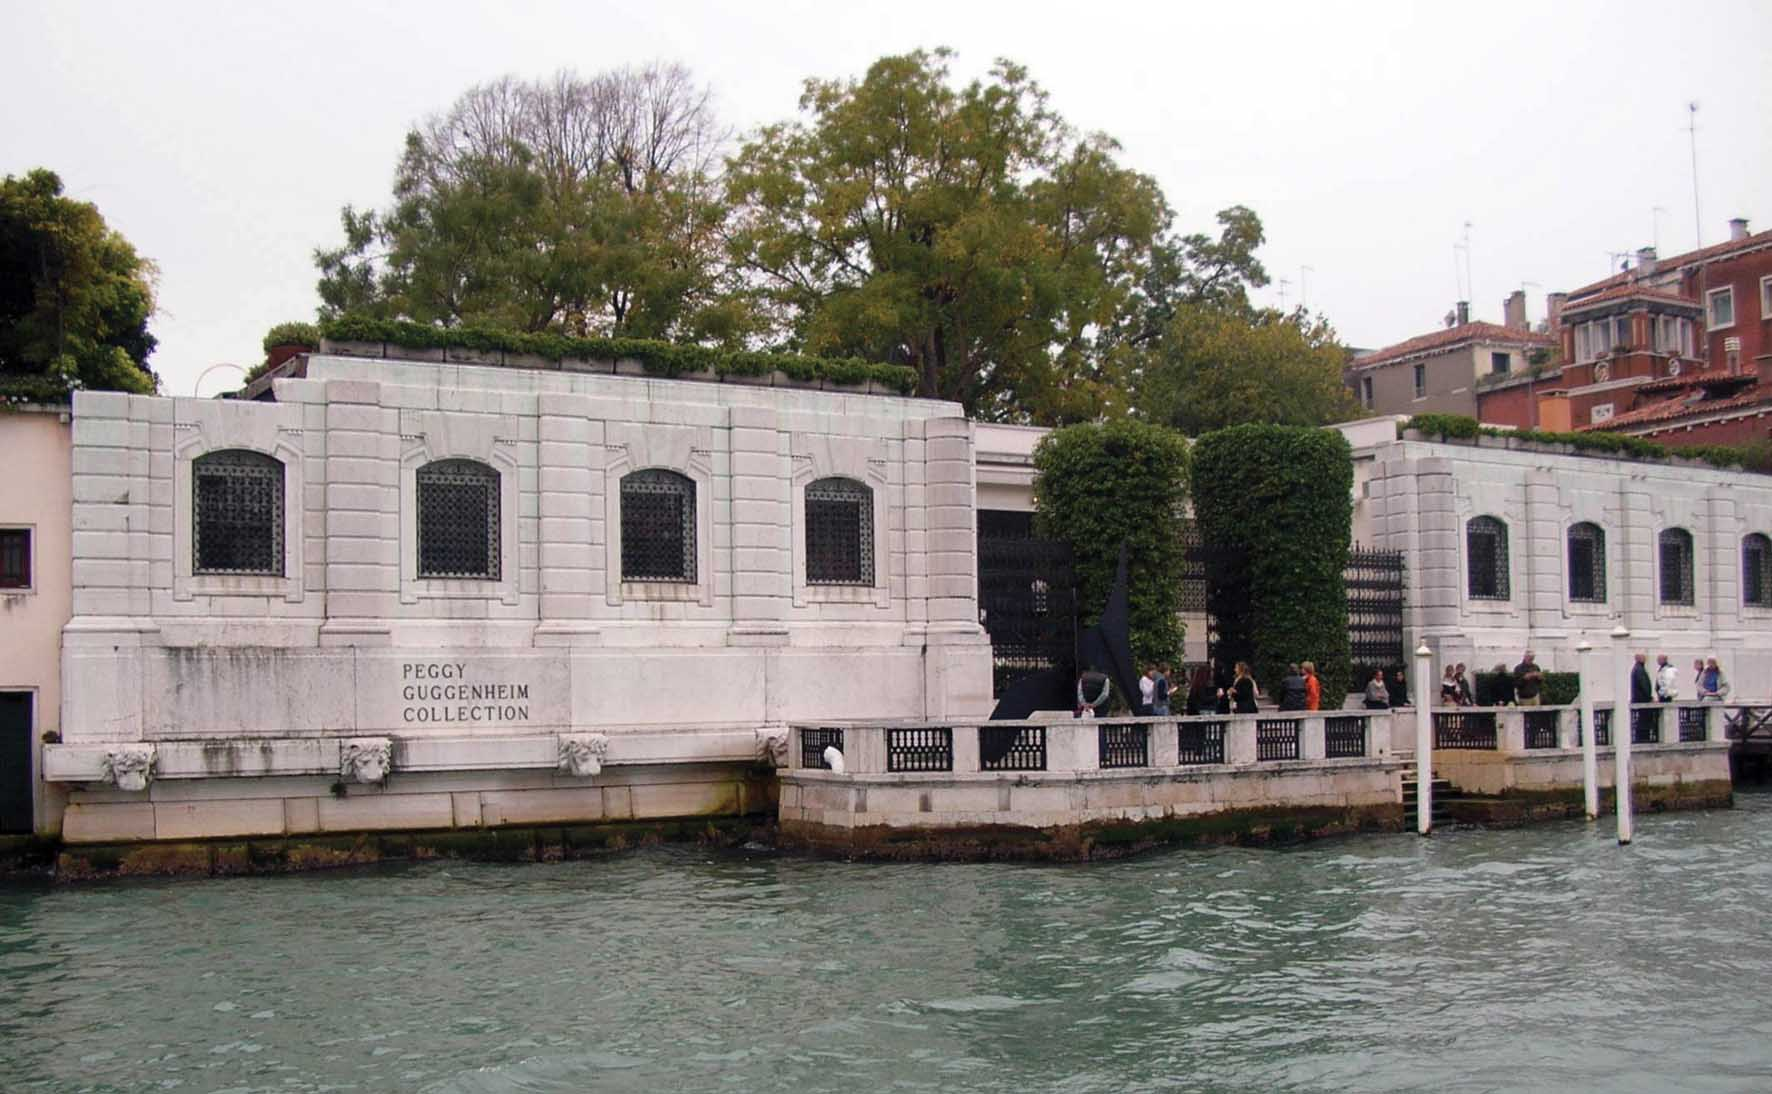 peggy guggenheim collection venezia 1